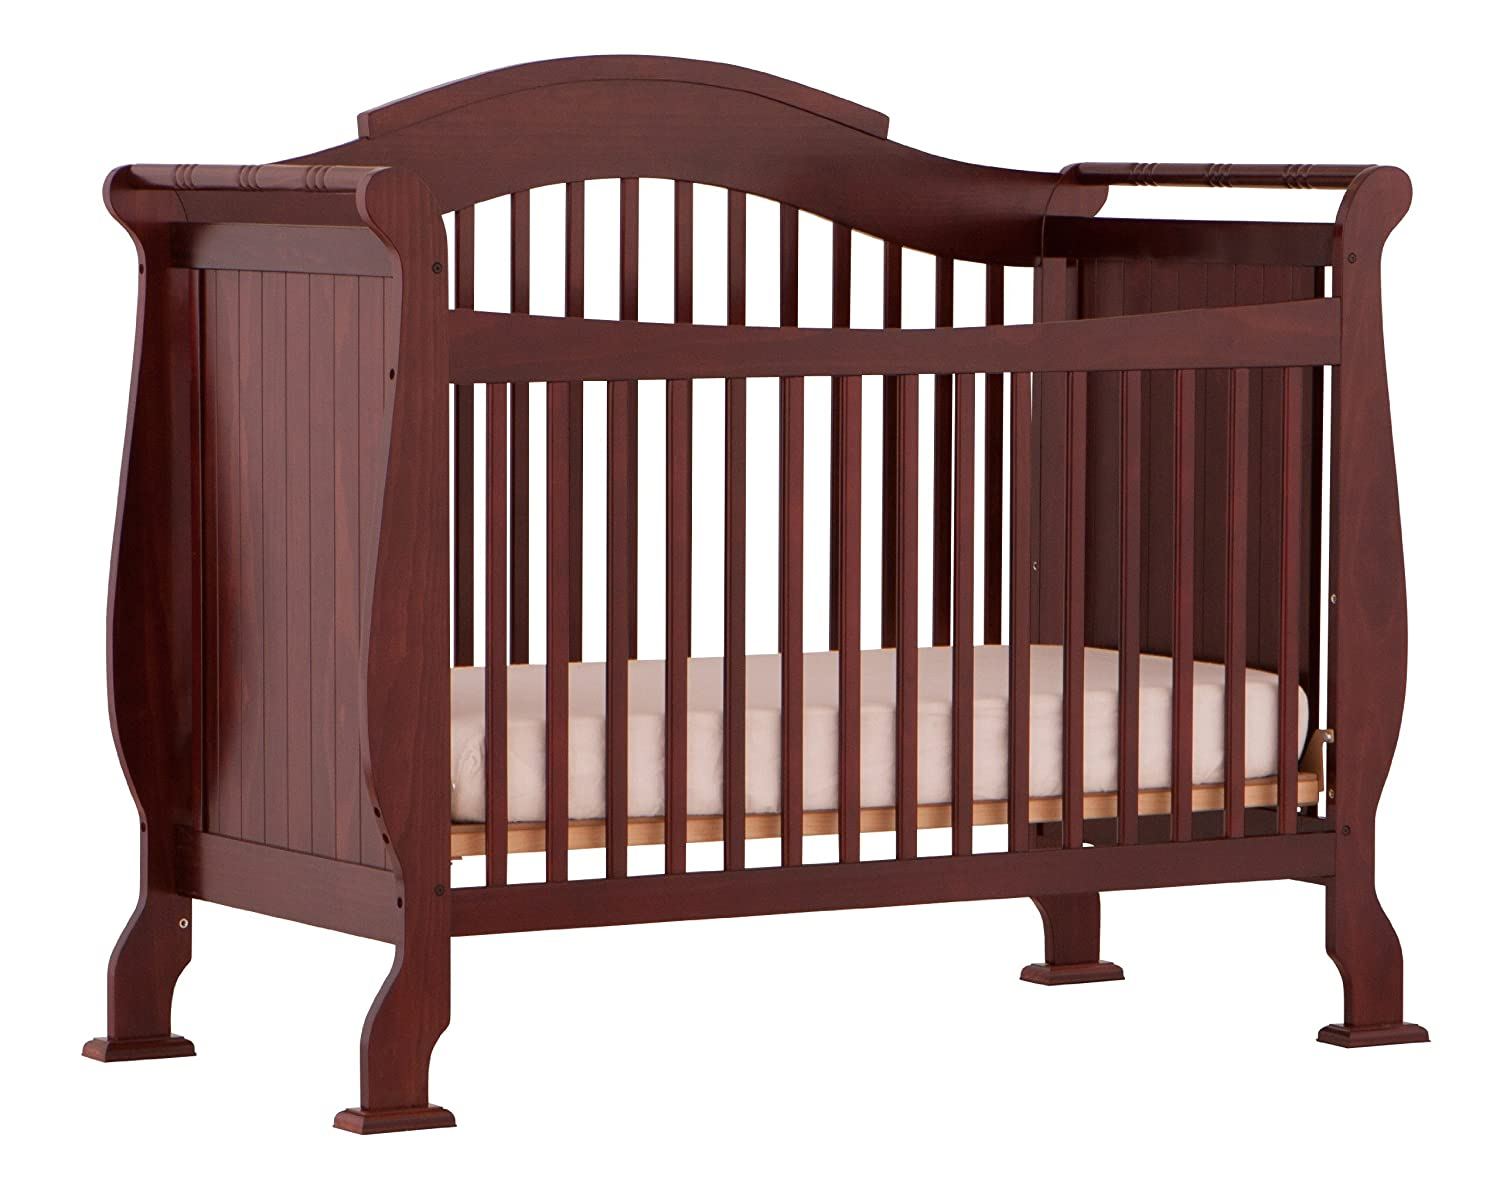 Elegant Amazon.com : Storkcraft Valentia Convertible Crib, Cherry : Baby Cribs :  Baby